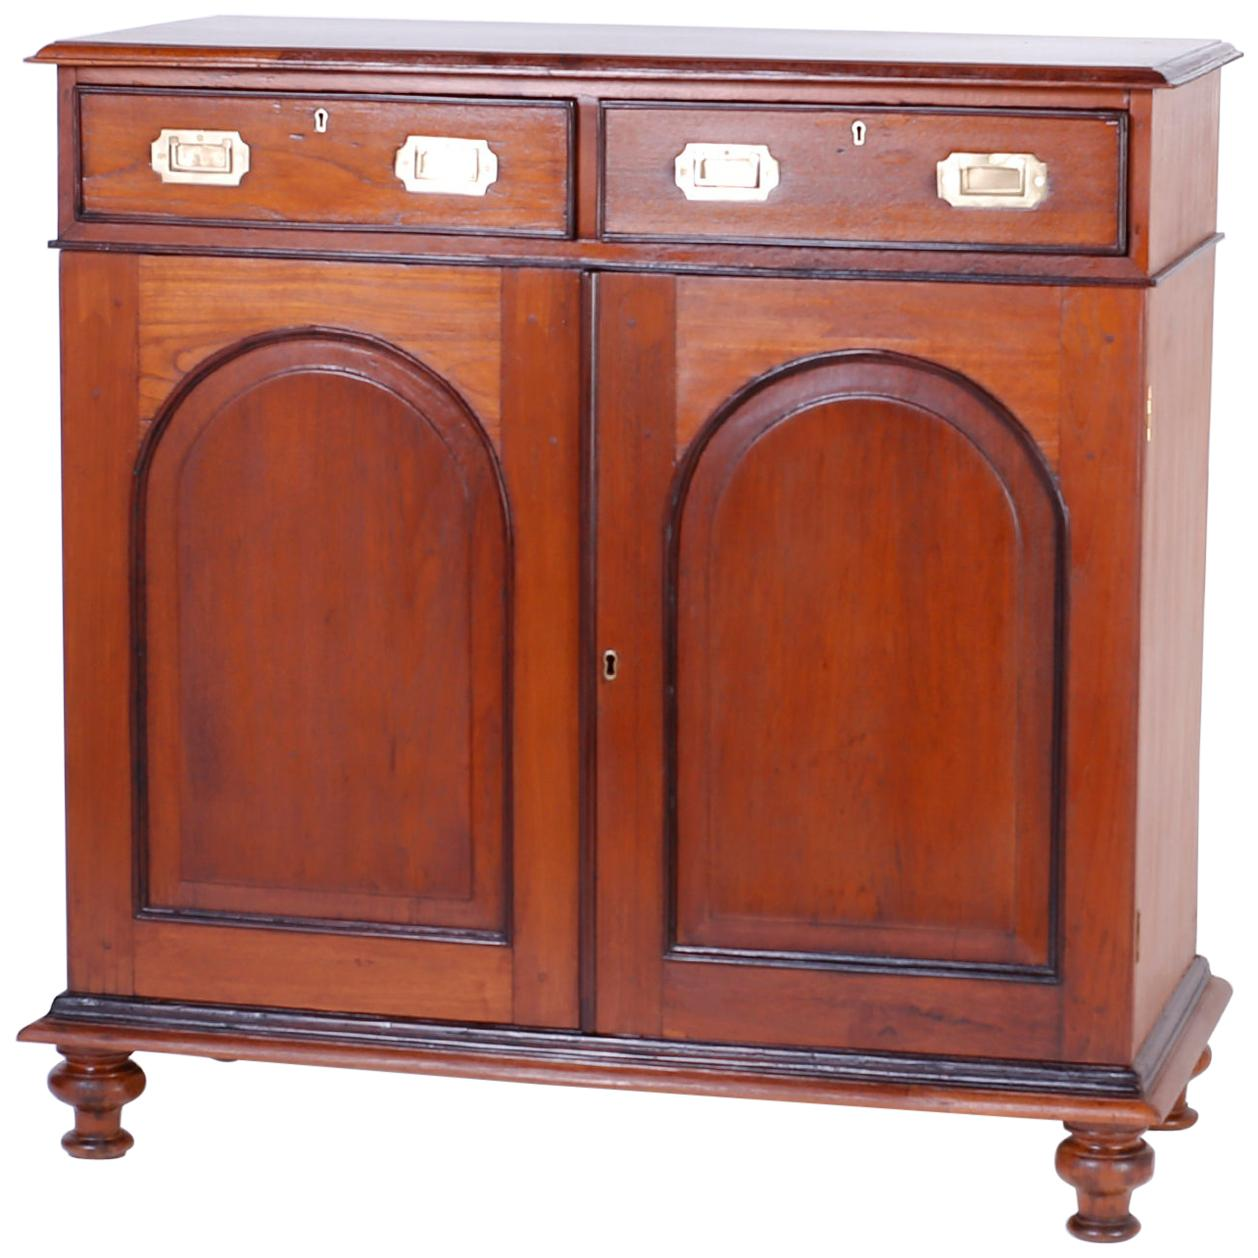 Anglo Indian Two-Door Cabinet or Sideboard